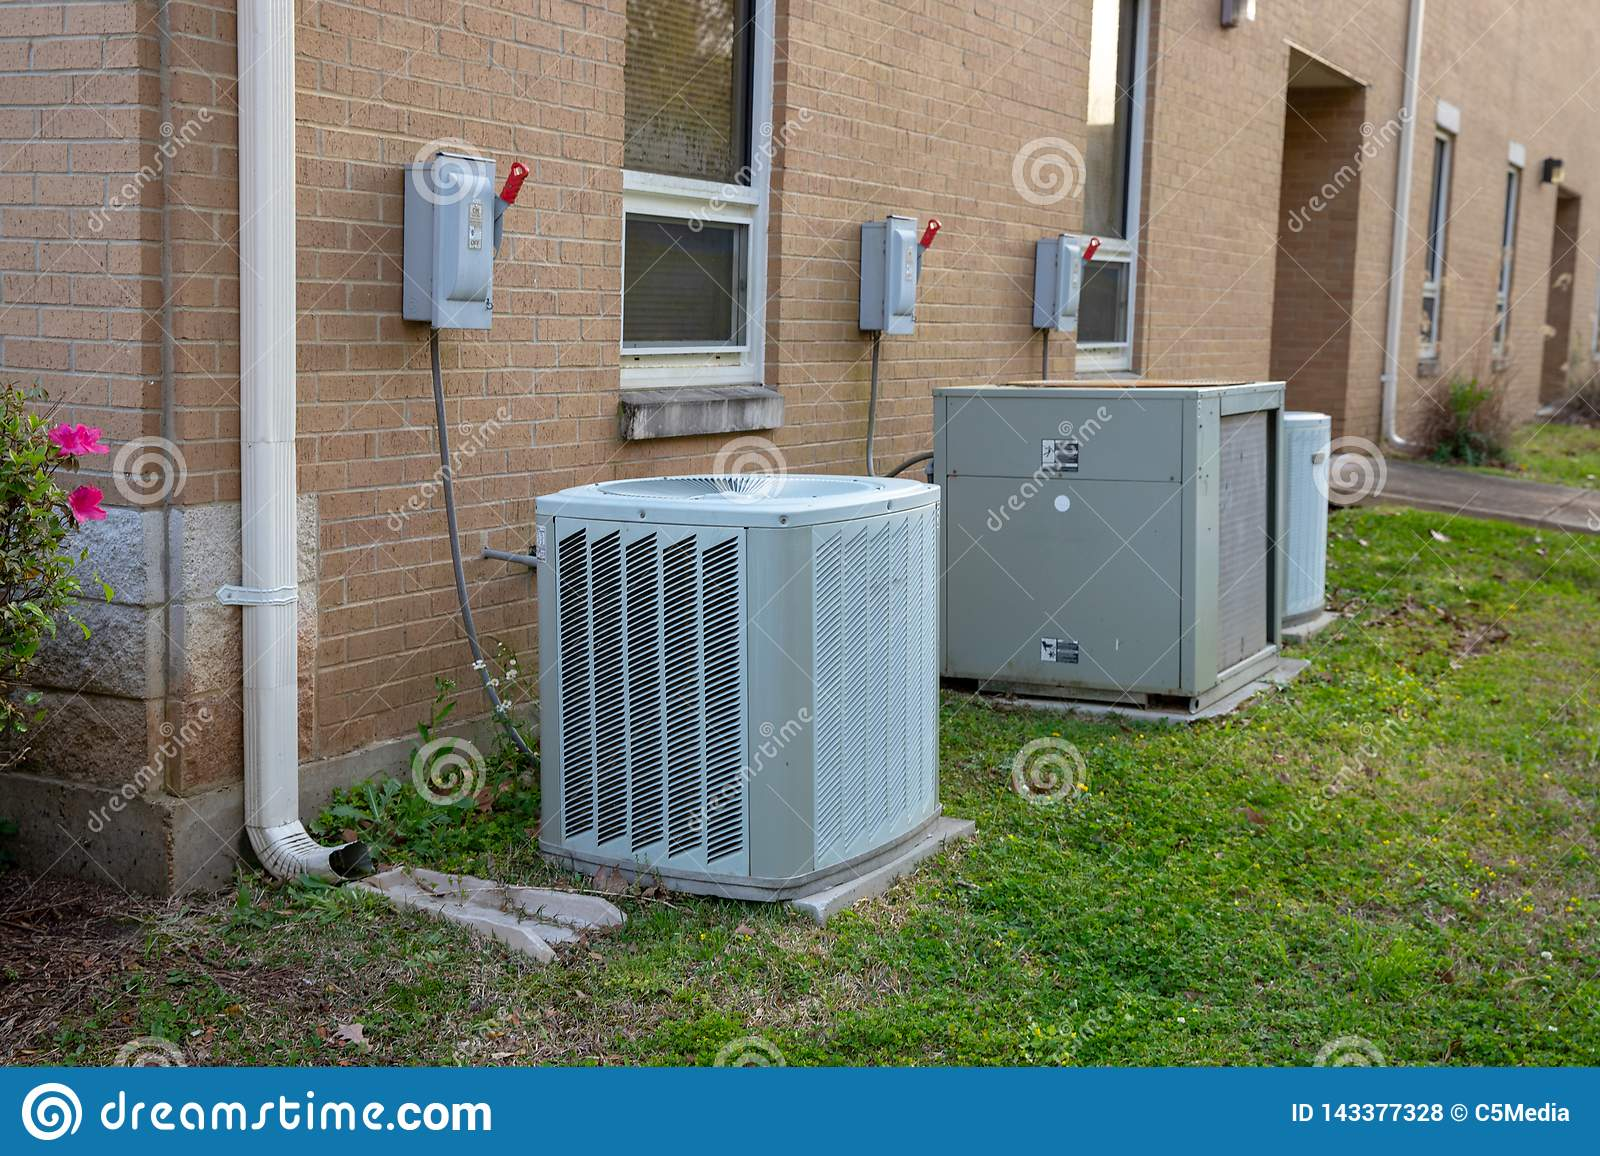 Variety of air conditioner units outside of commerical building